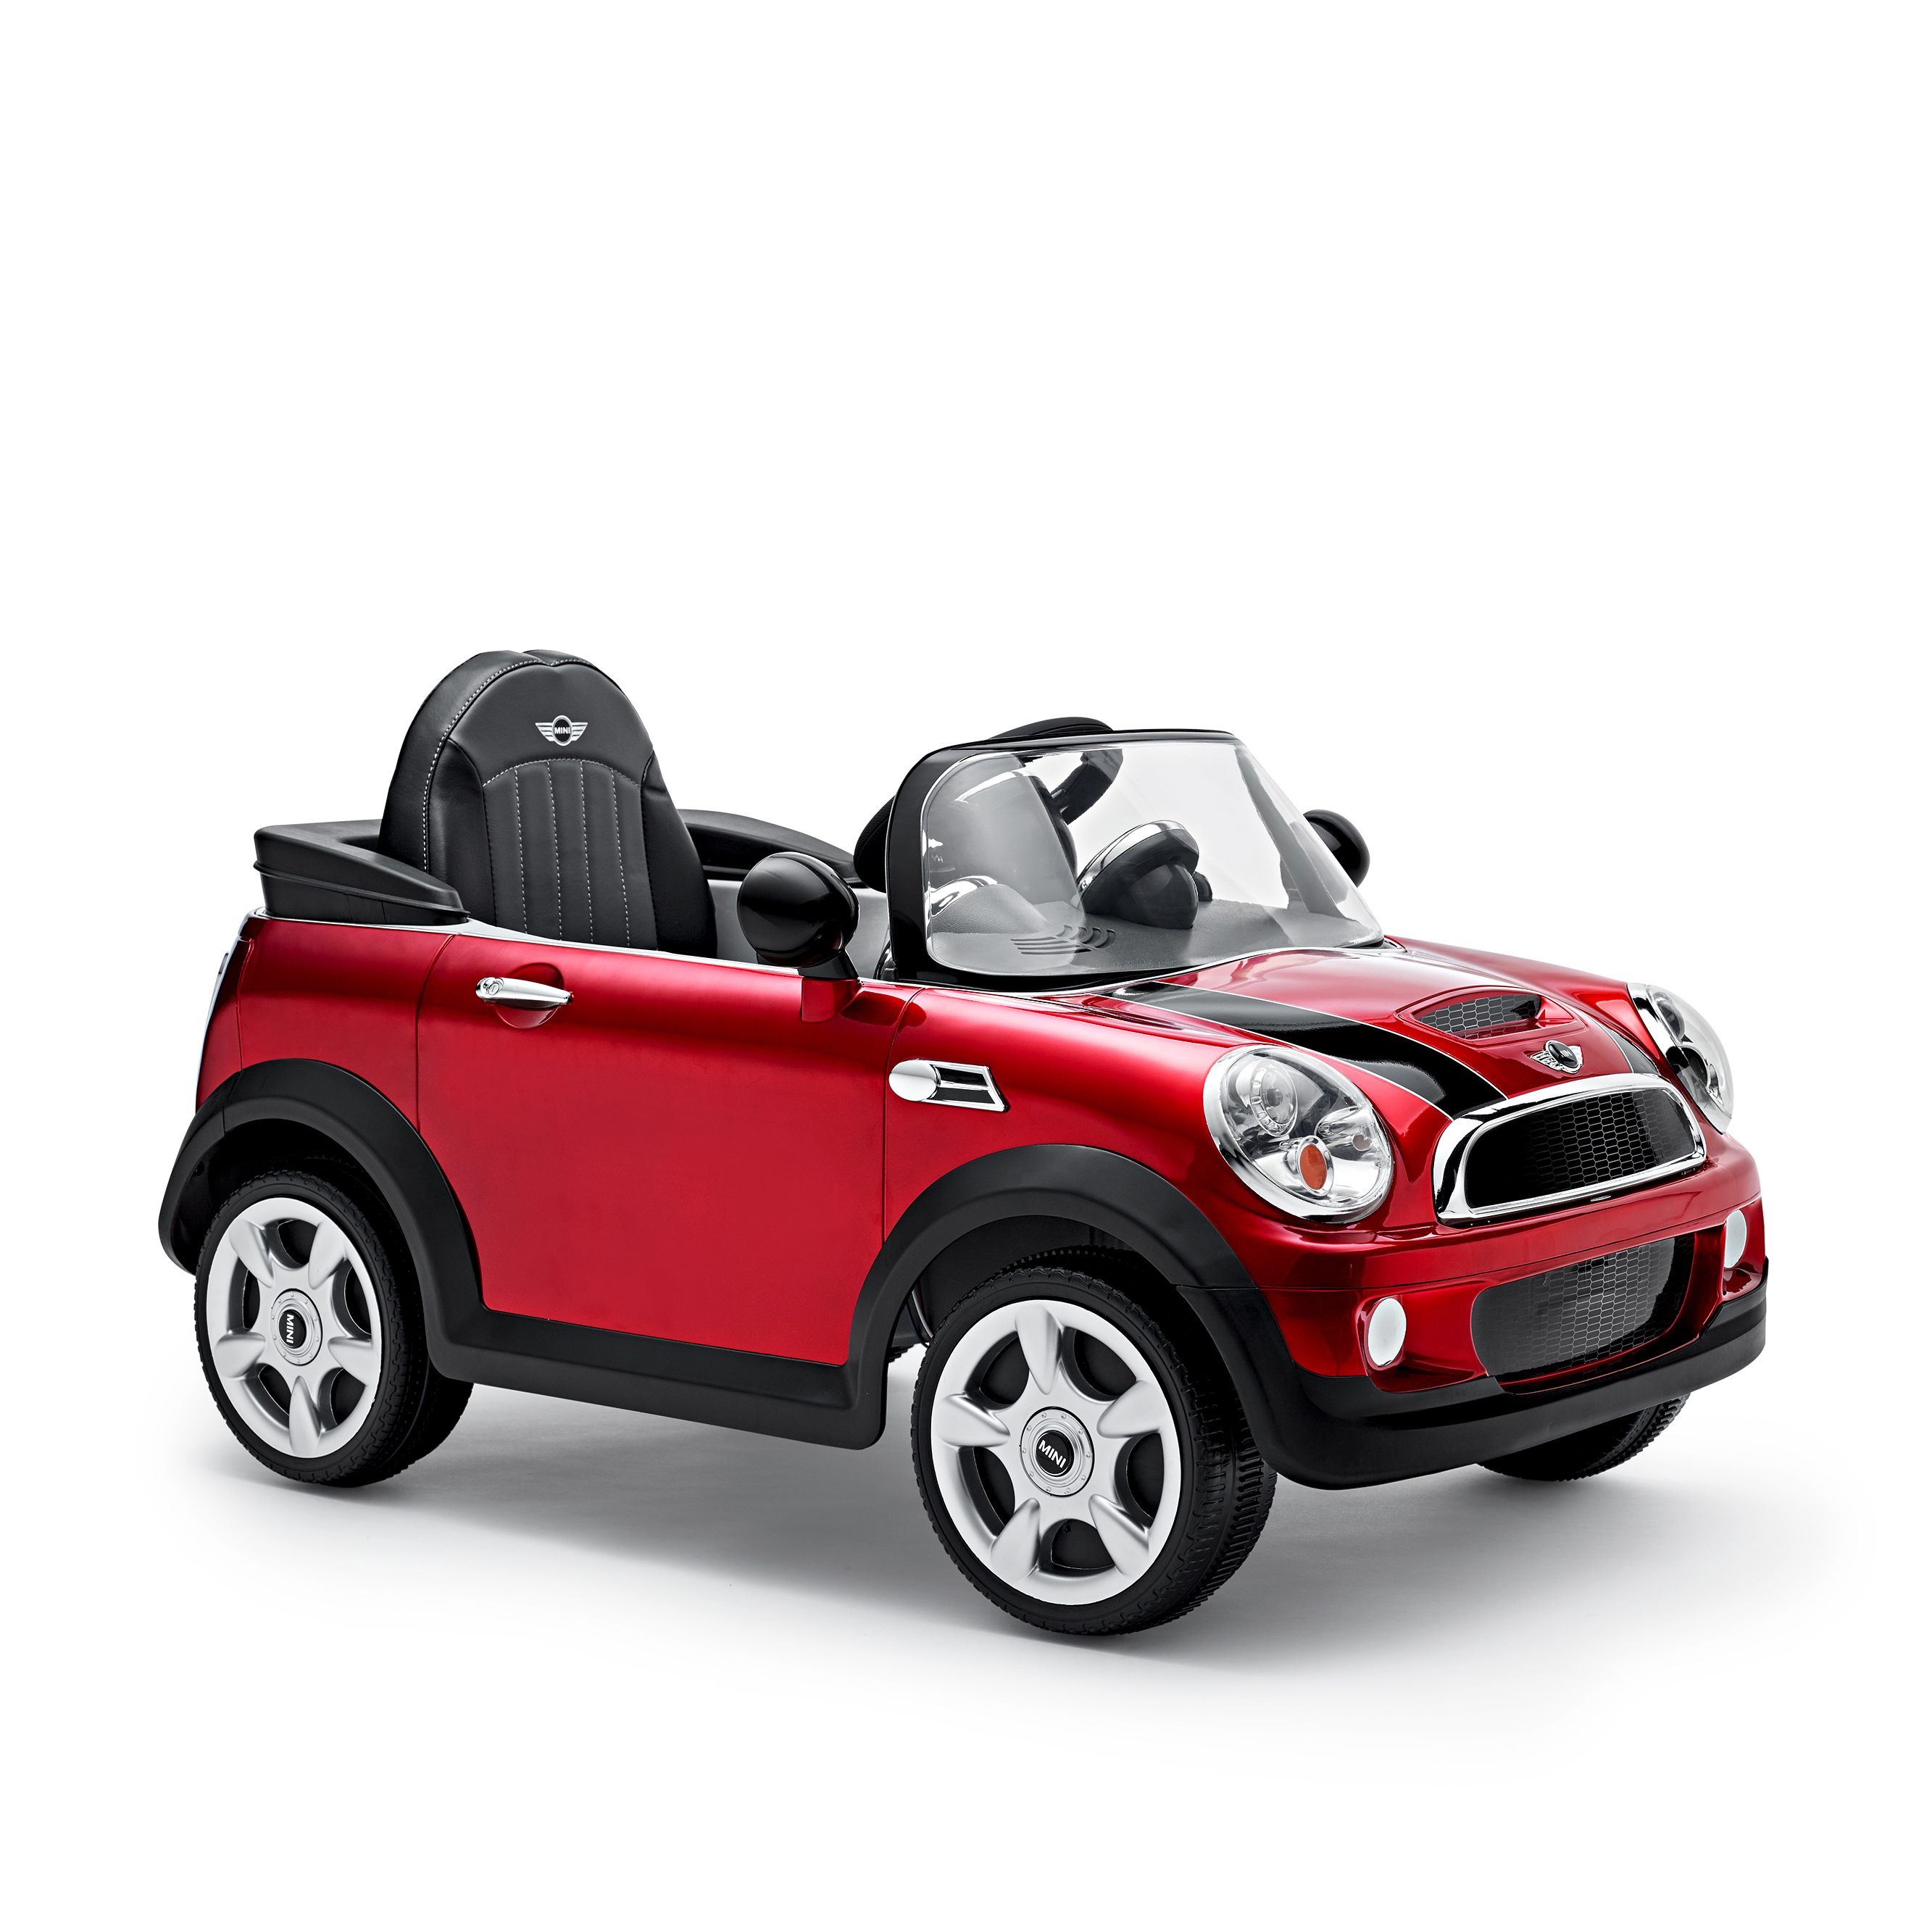 mini cooper s cabrio rouge lectrique dans mini lifestyle mobilit et miniatures boutique. Black Bedroom Furniture Sets. Home Design Ideas